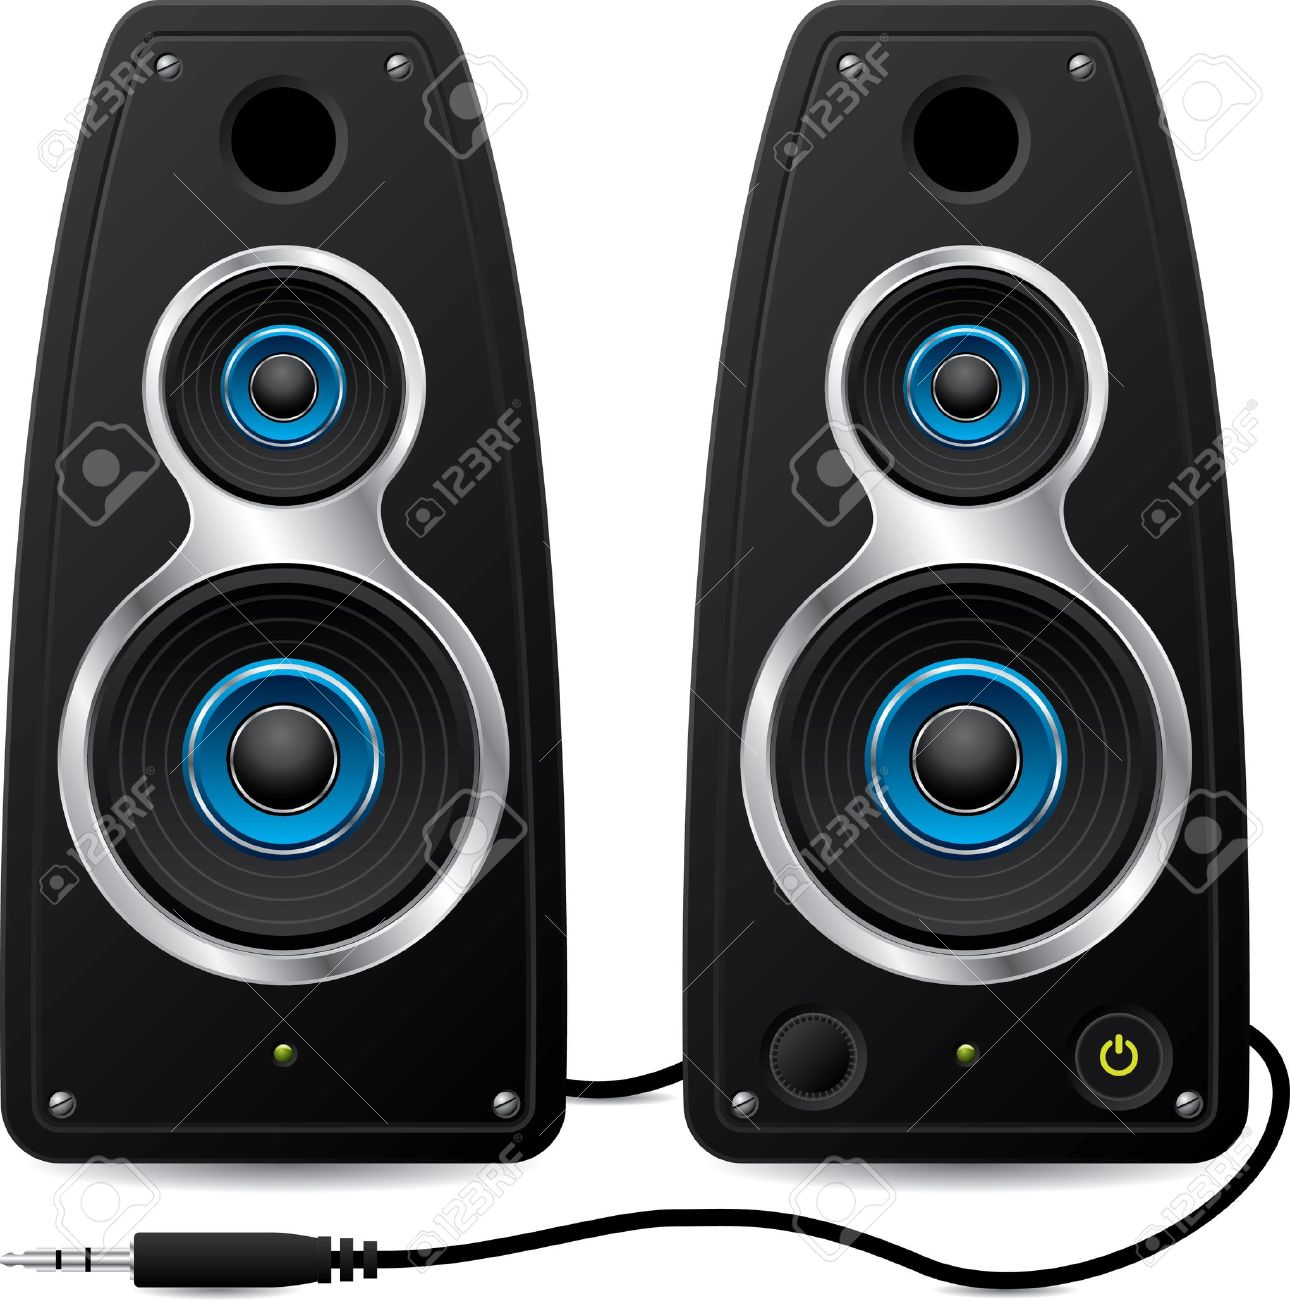 sound system clipart. black stereo speakers with plug stock vector - 9453063 sound system clipart